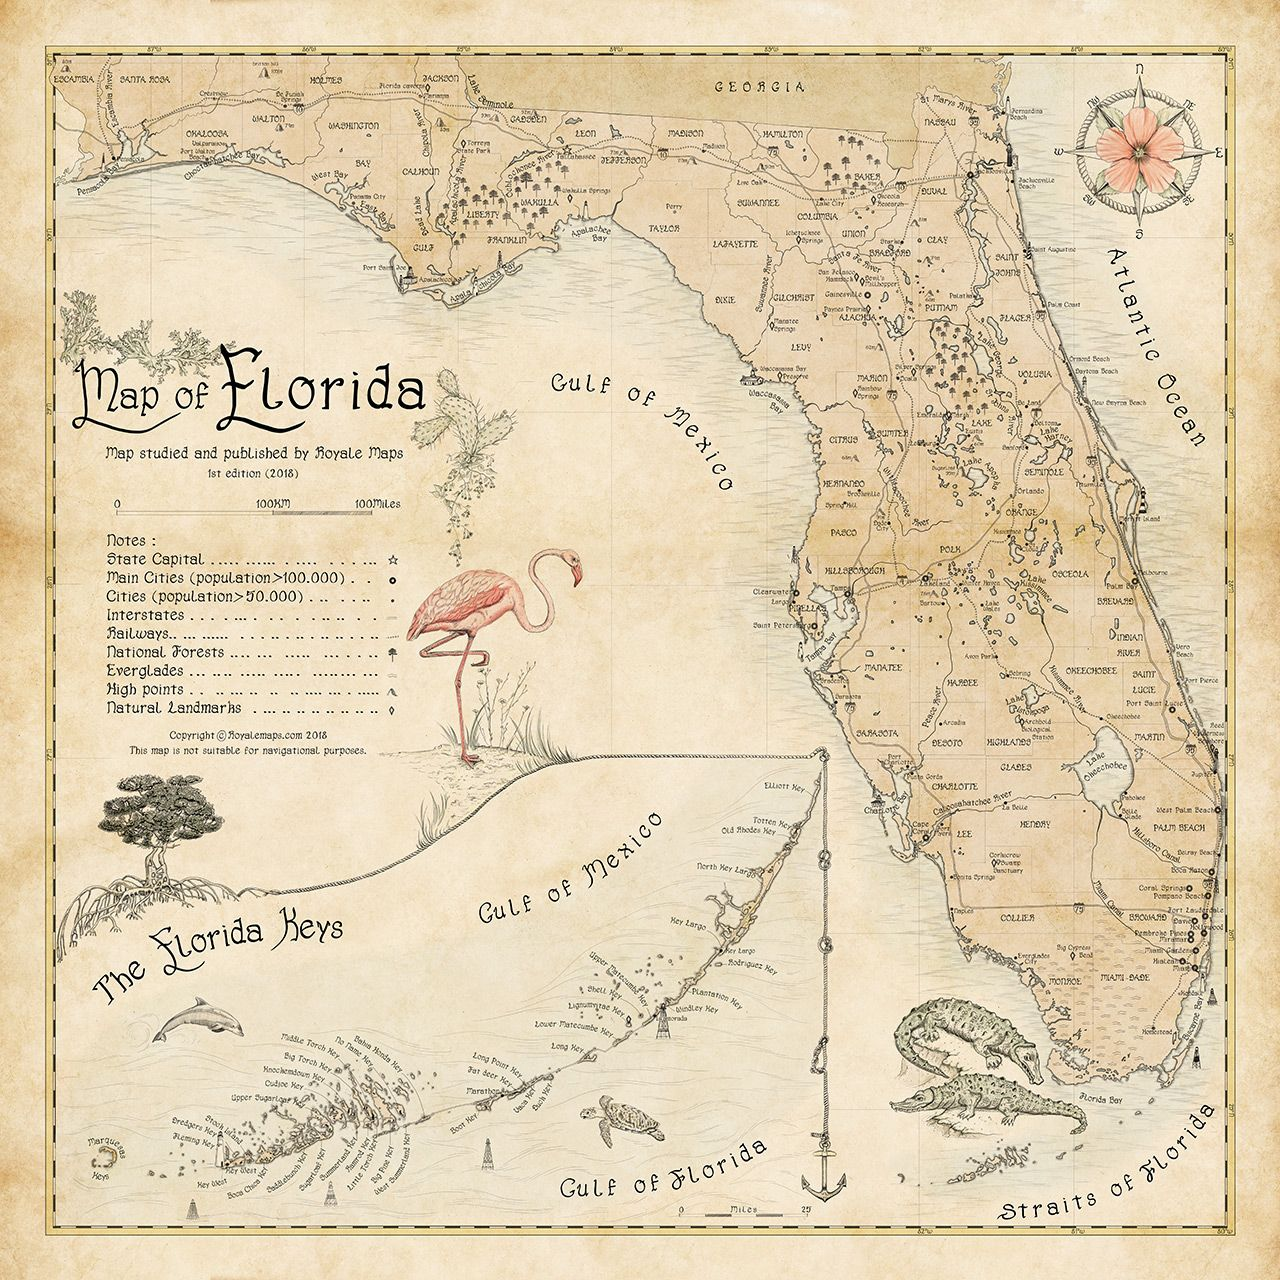 Complete Map Of Florida.Map Of Florida Map Of Florida In 2019 Map Of Narnia